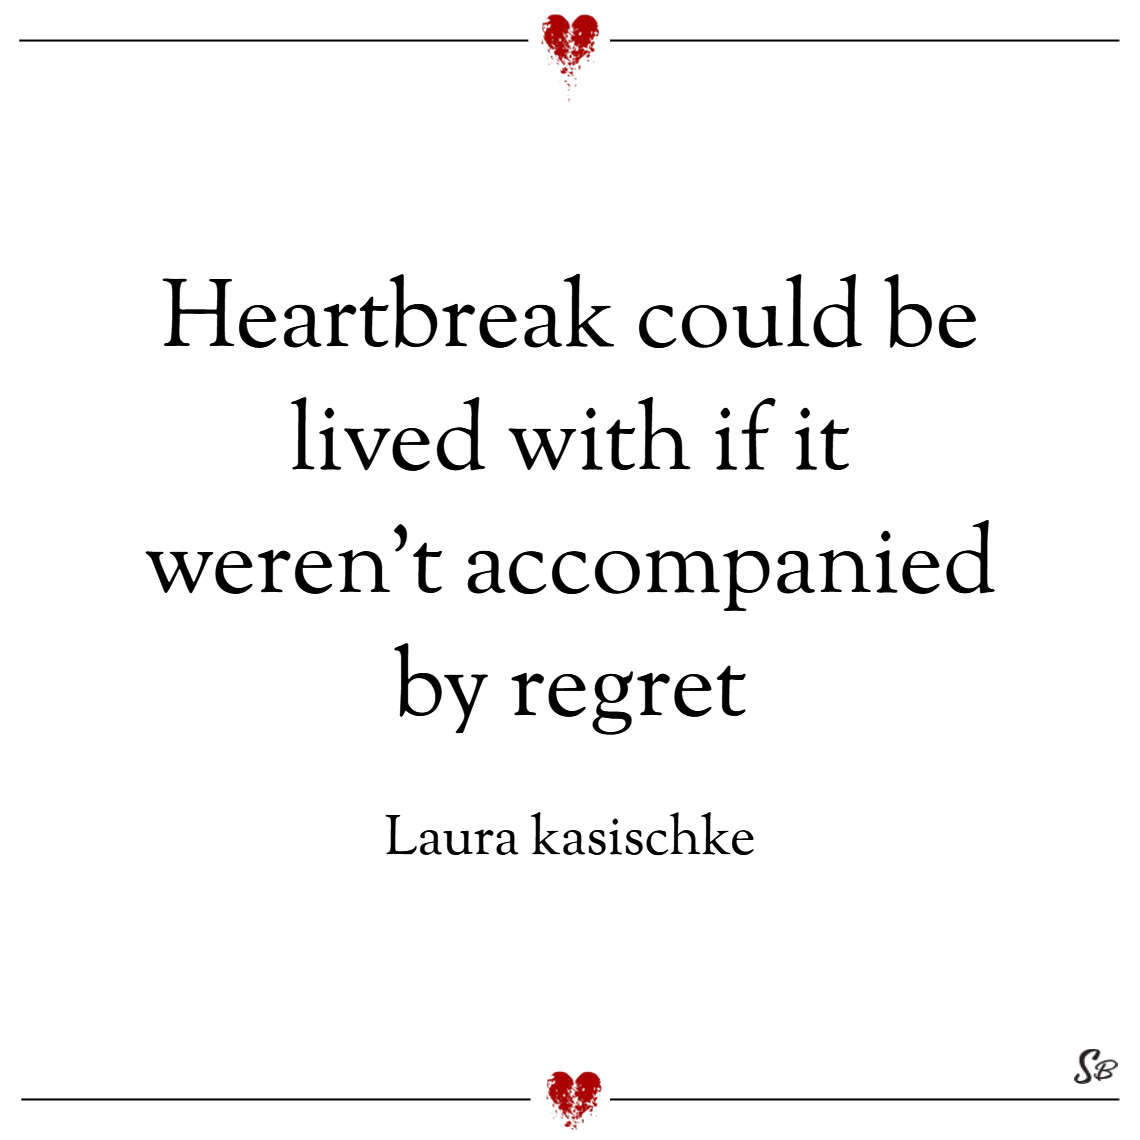 Heartbreak could be lived with if it weren't accompanied by regret. – laura kasischke